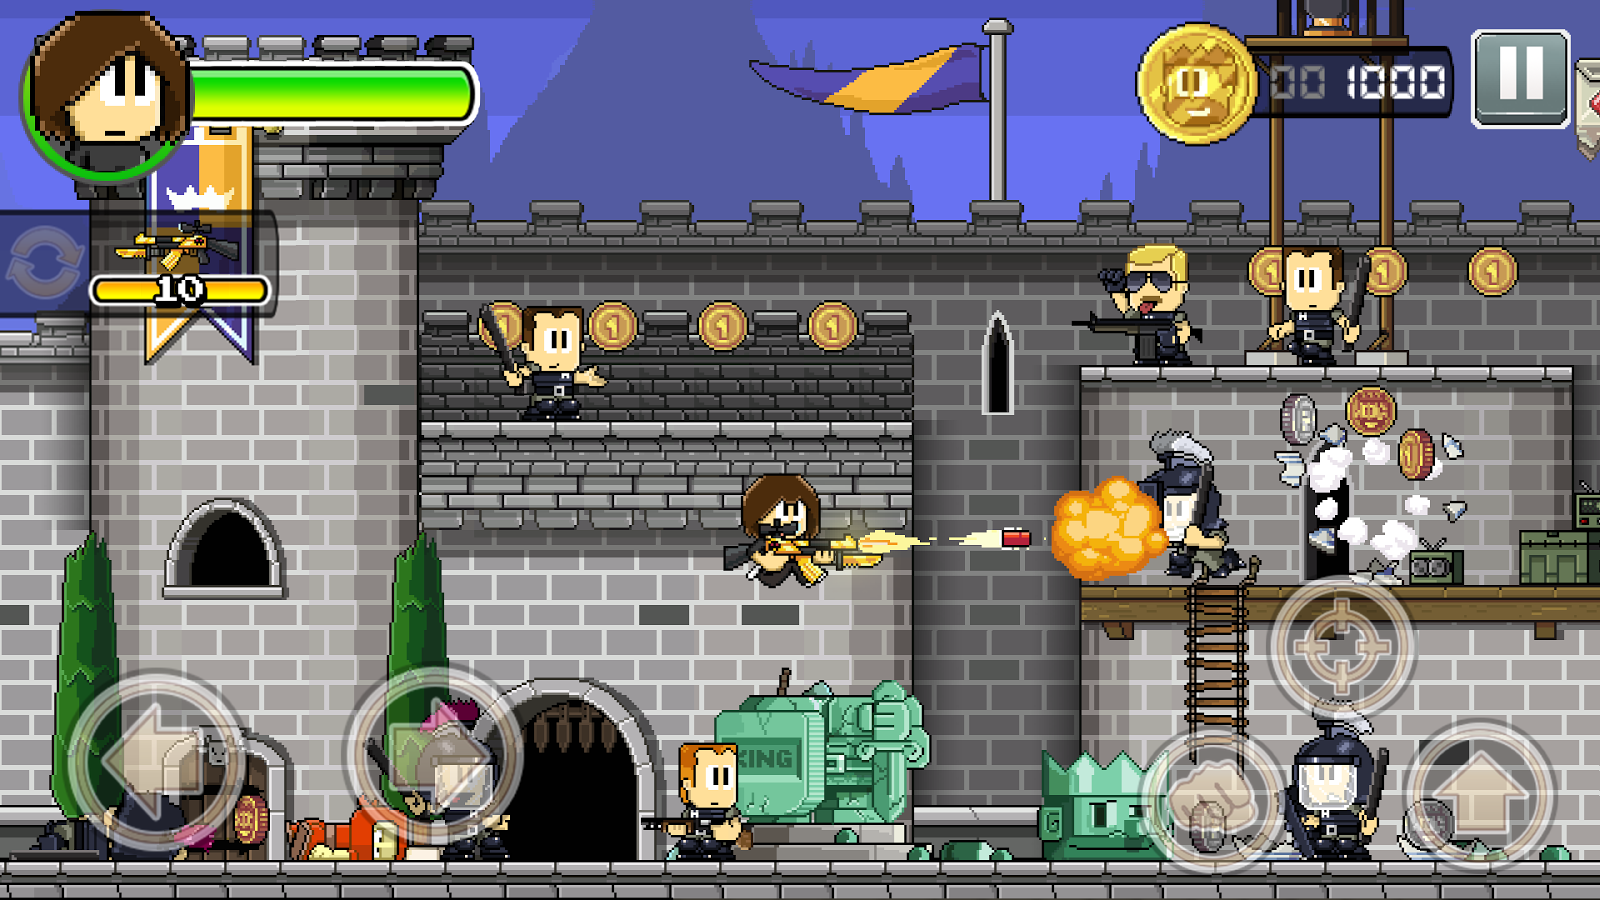 Dan the Man: Action Platformer: captura de pantalla